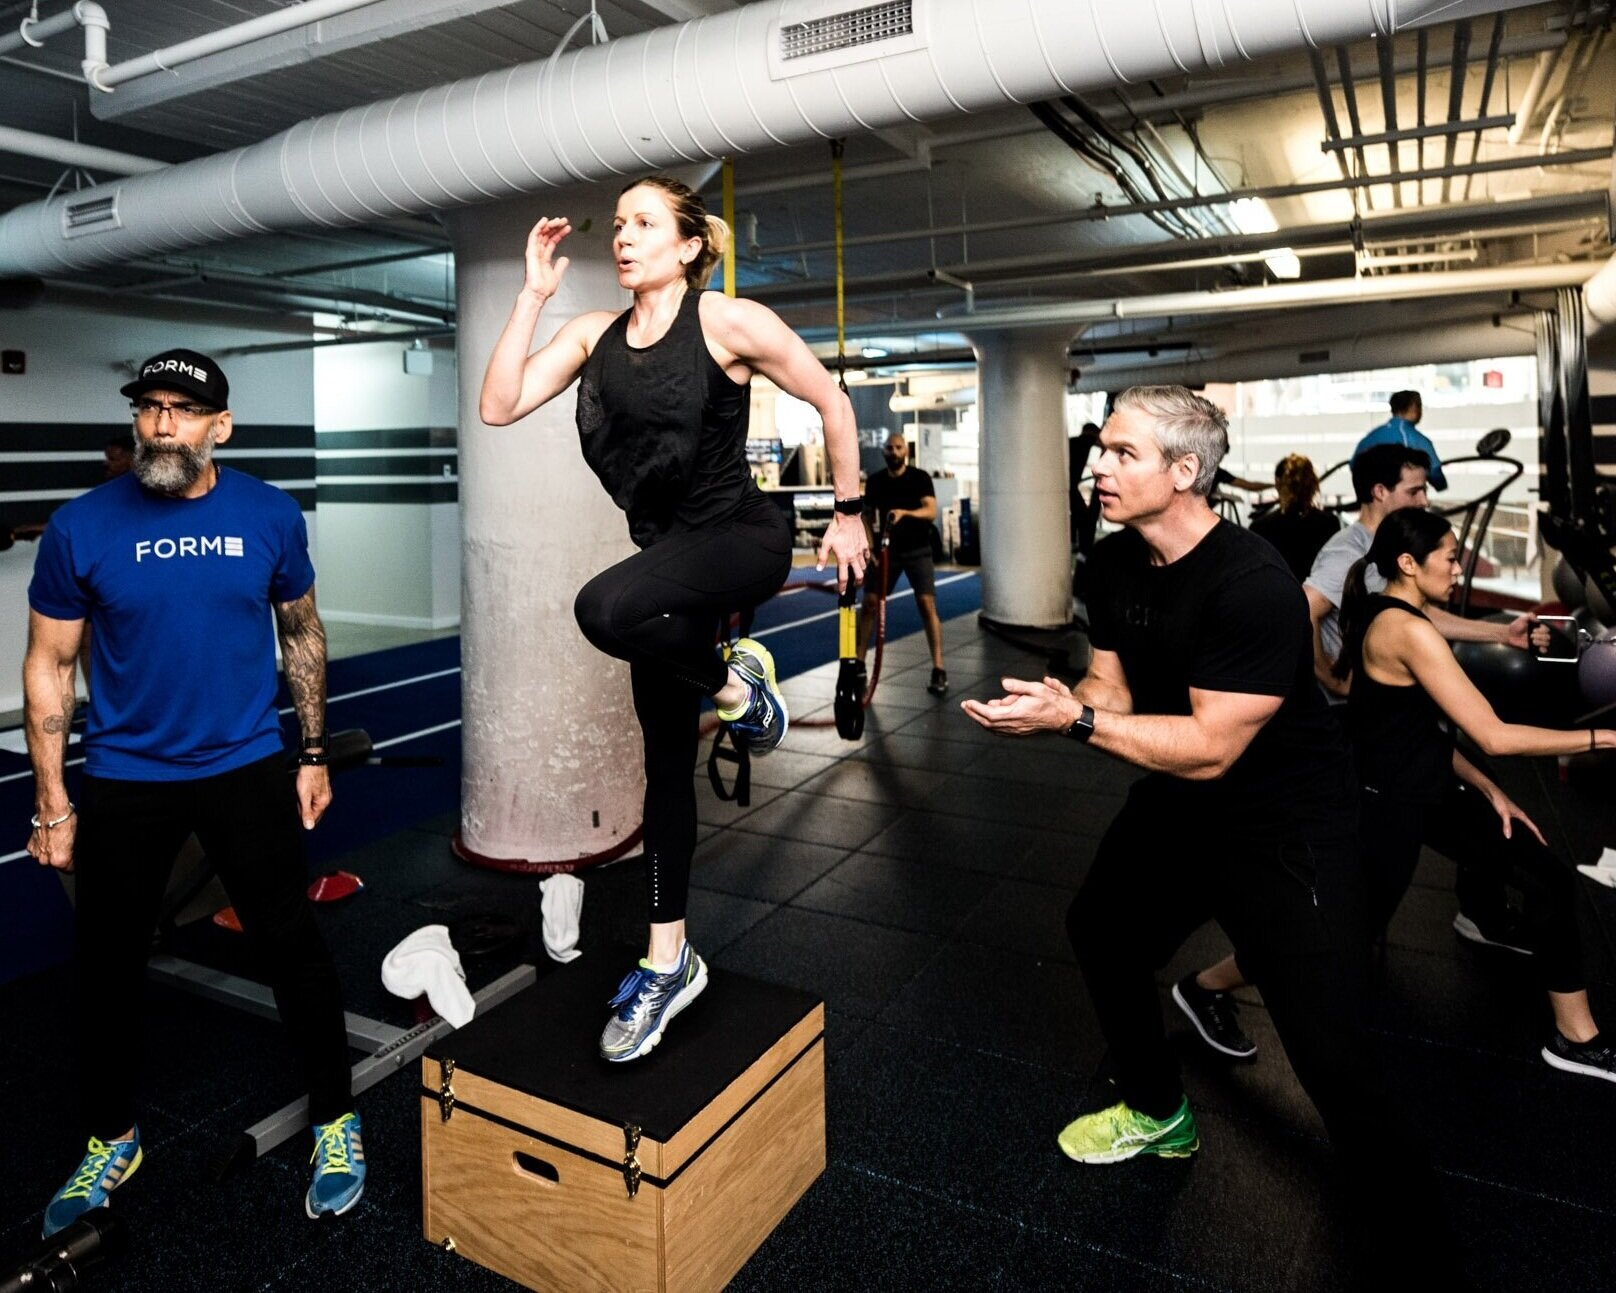 The Evolution of Group Fitness - Metabolic Conditioning is a fitness phenomenon. METCON, also known as High Intensity Interval Training (HIIT), has been listed as one of the top fitness trends for over 10 years now for a reason. It is by far one of the most effective methods for burning fat and improving body composition.